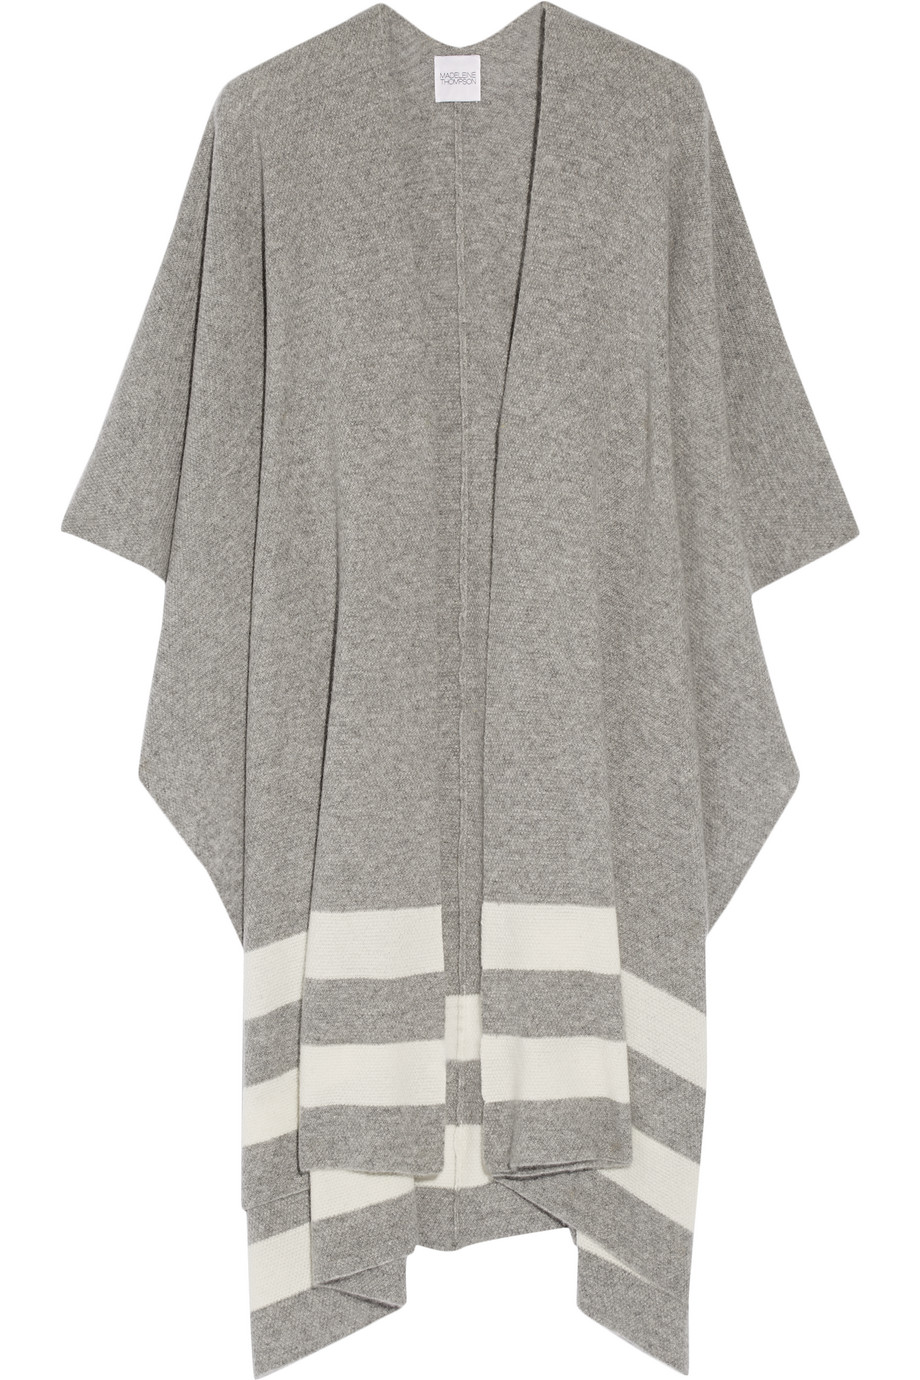 Towton Striped Cashmere Wrap, Madeleine Thompson, Gray, Women's